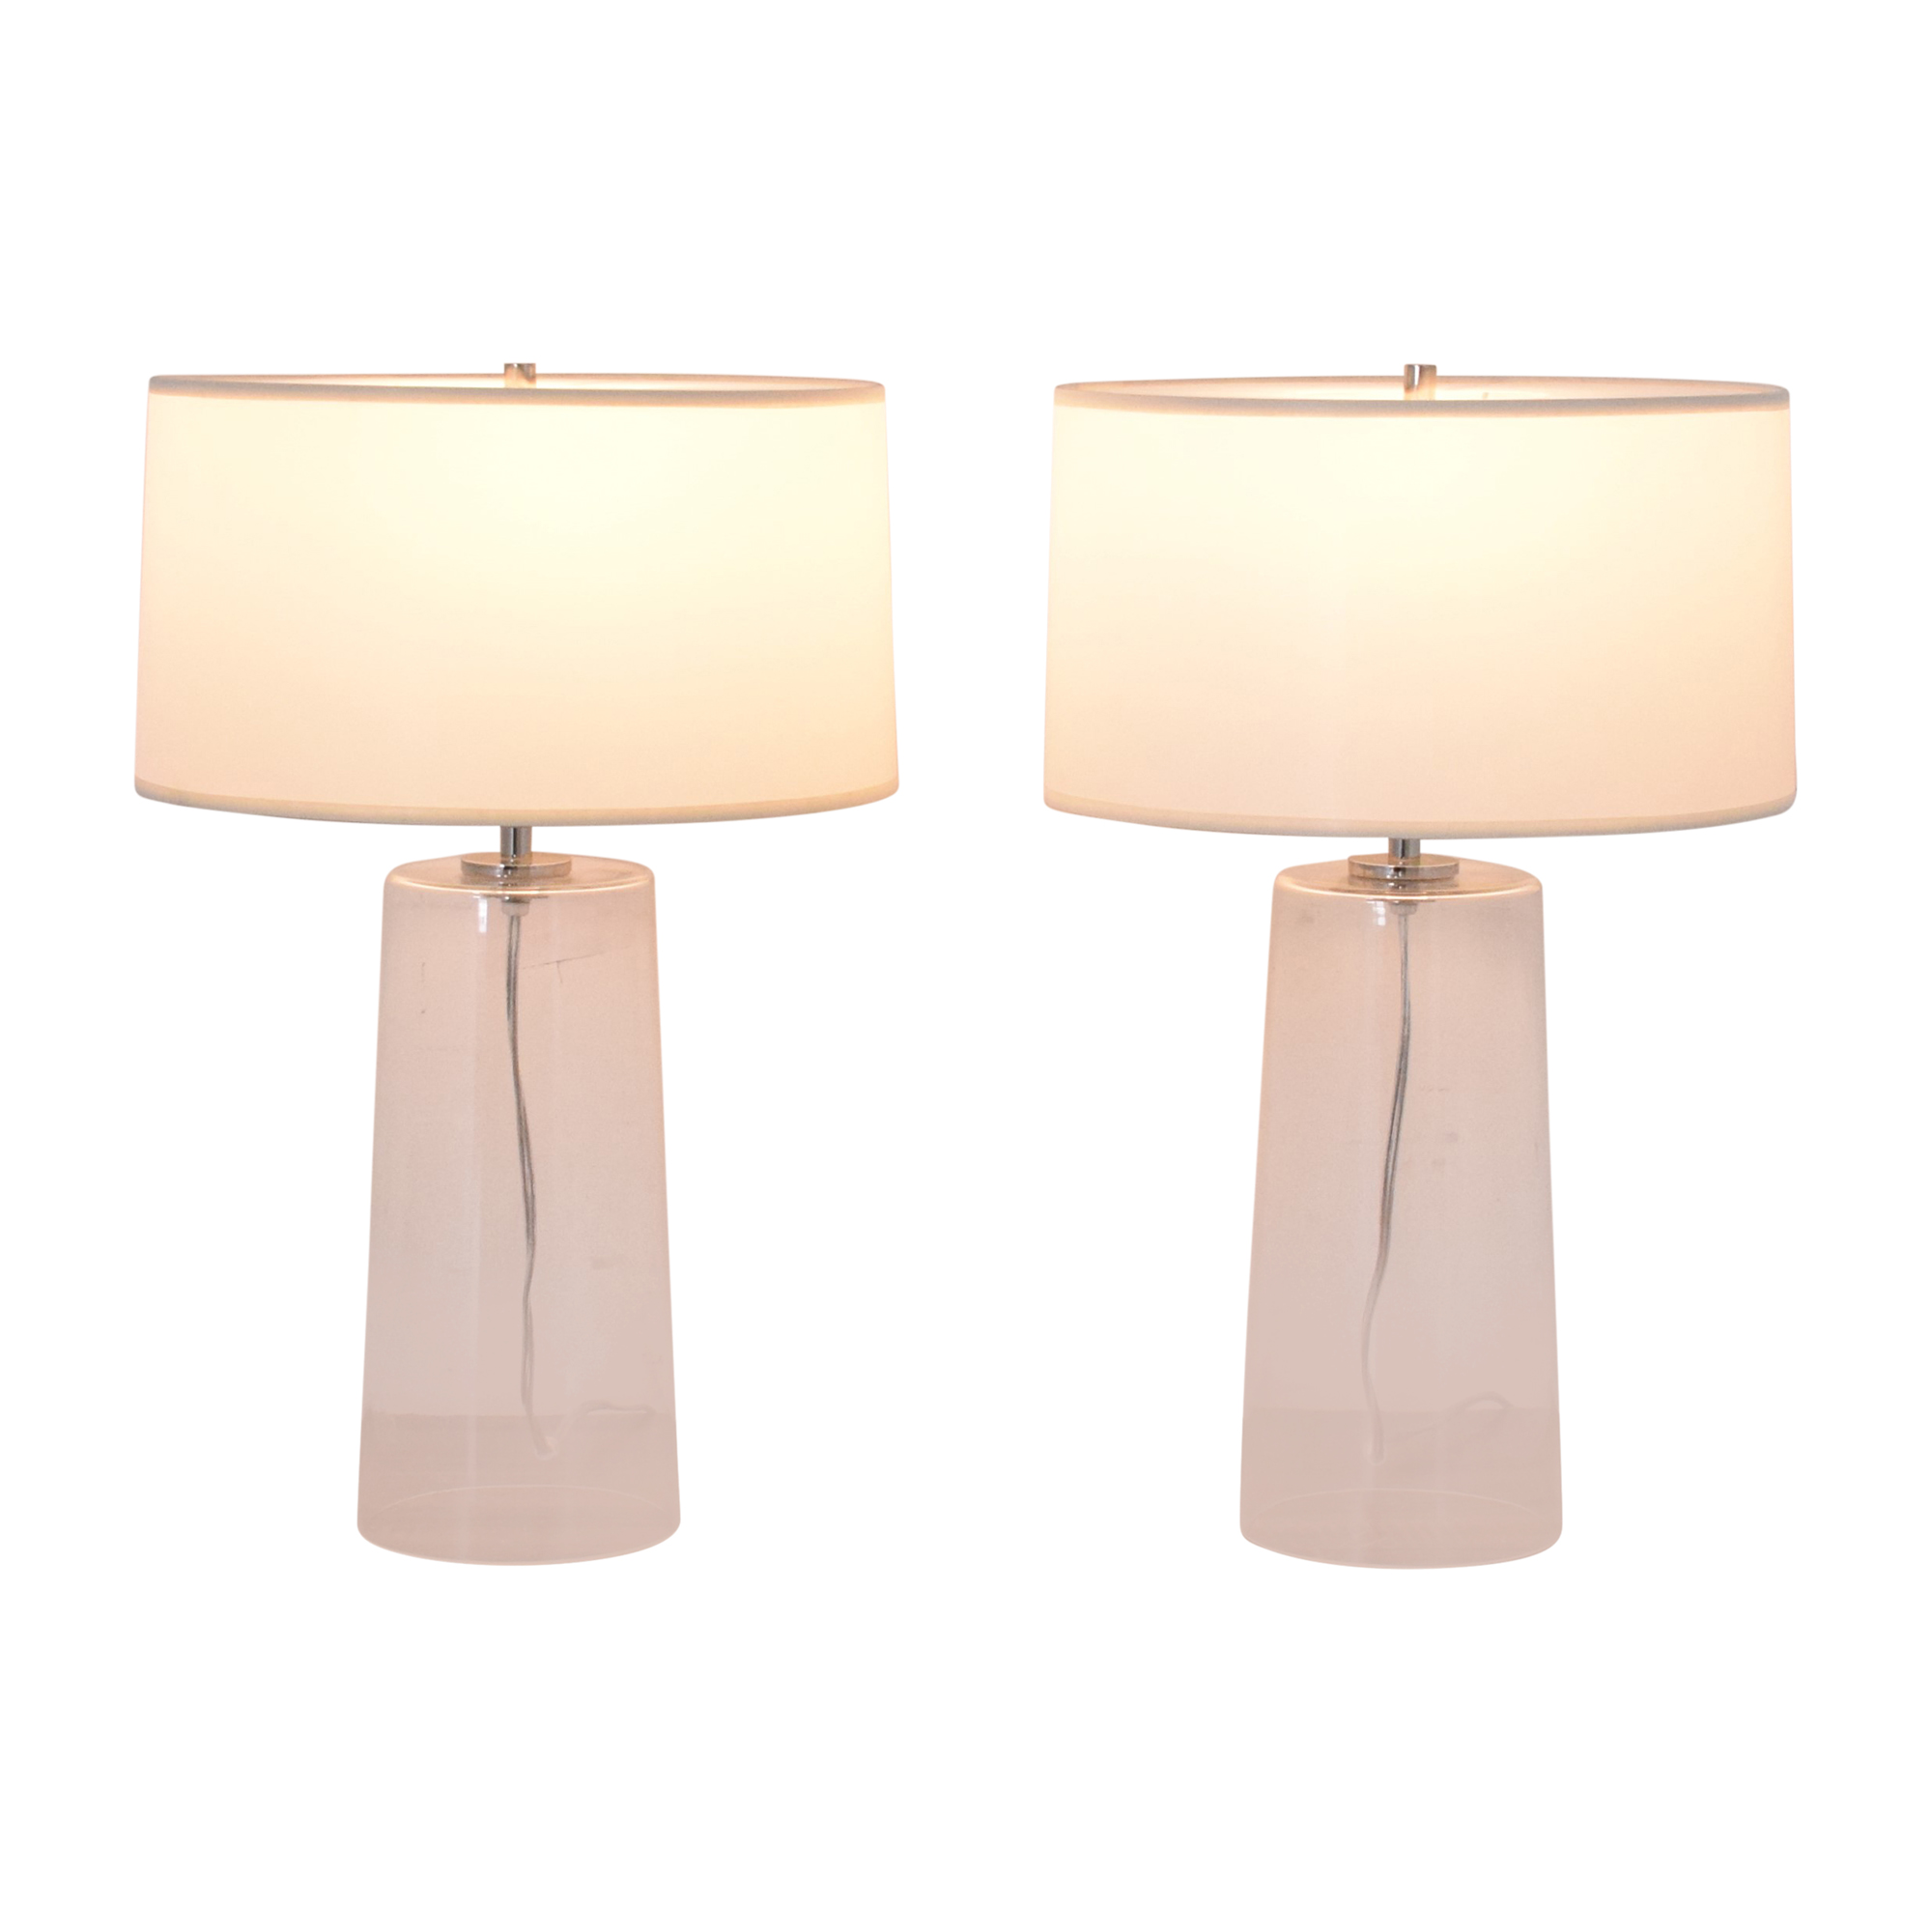 Robert Abbey Robert Abbey Rico Espinet Olinda Accent Lamps used